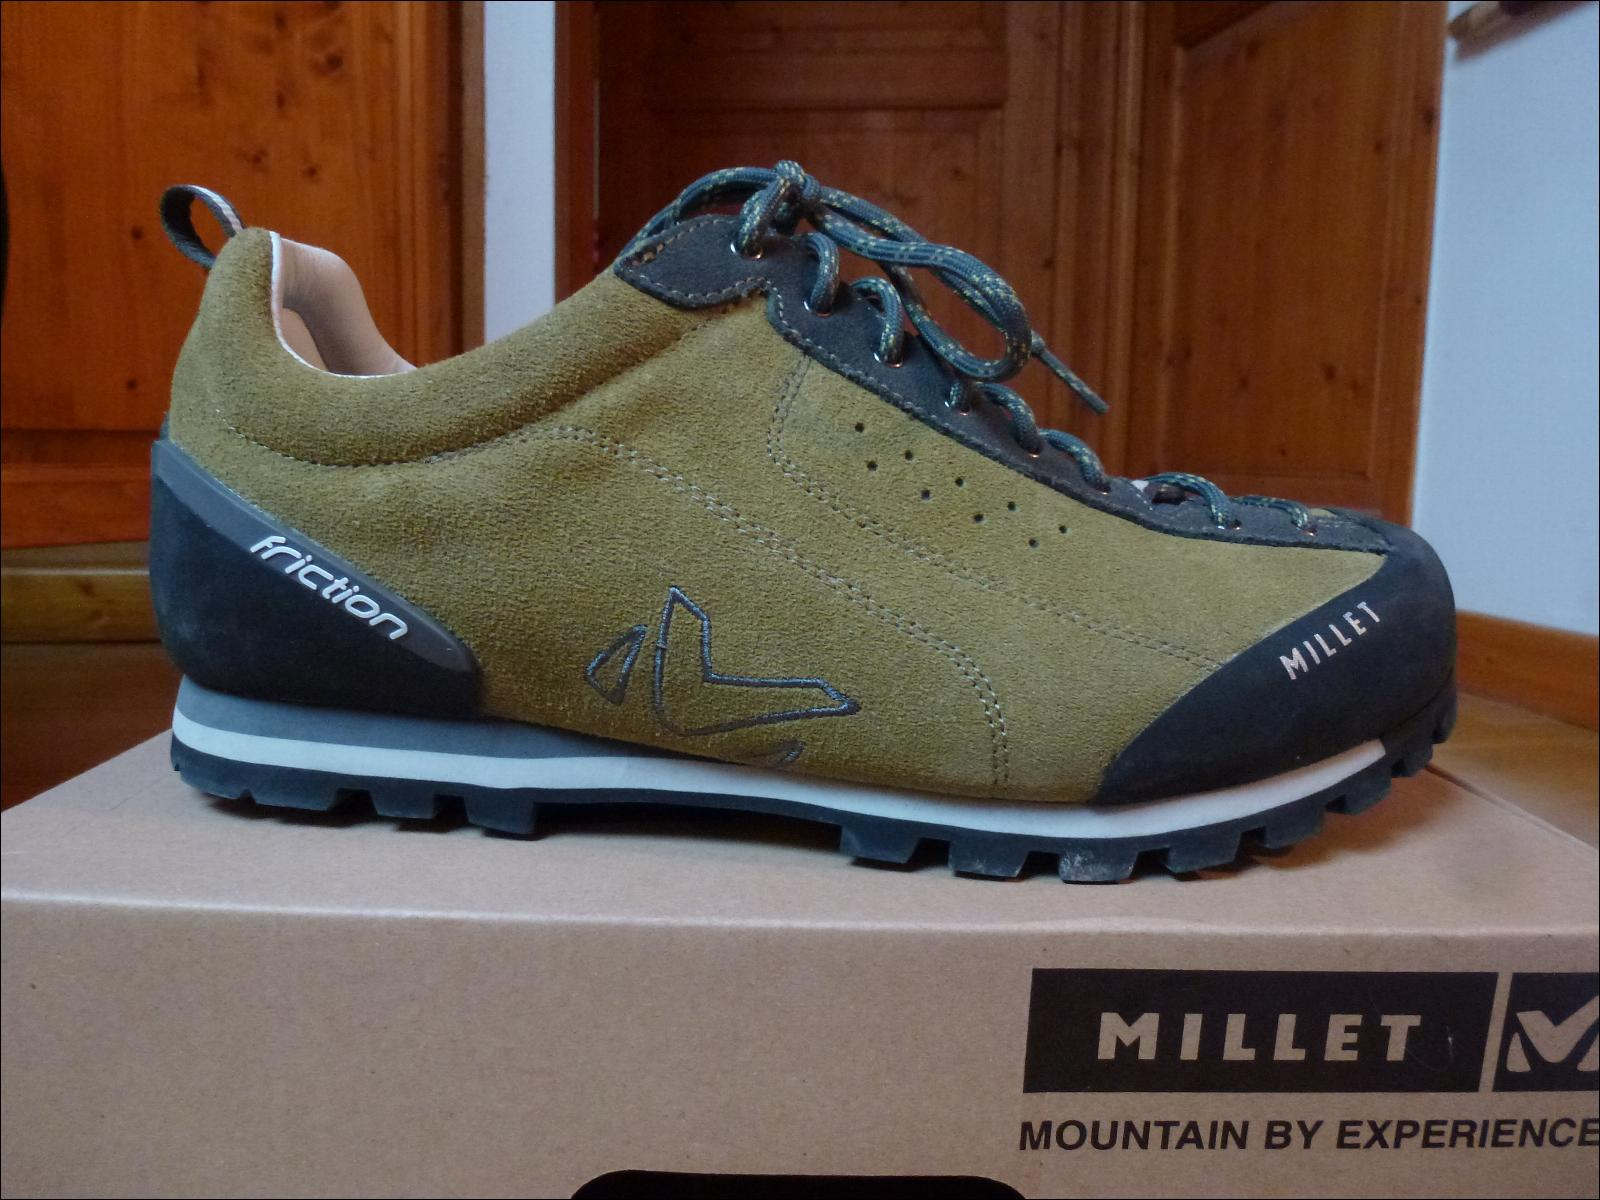 Millet Approche Friction Chaussure D millet Friction millet PZXiOTku